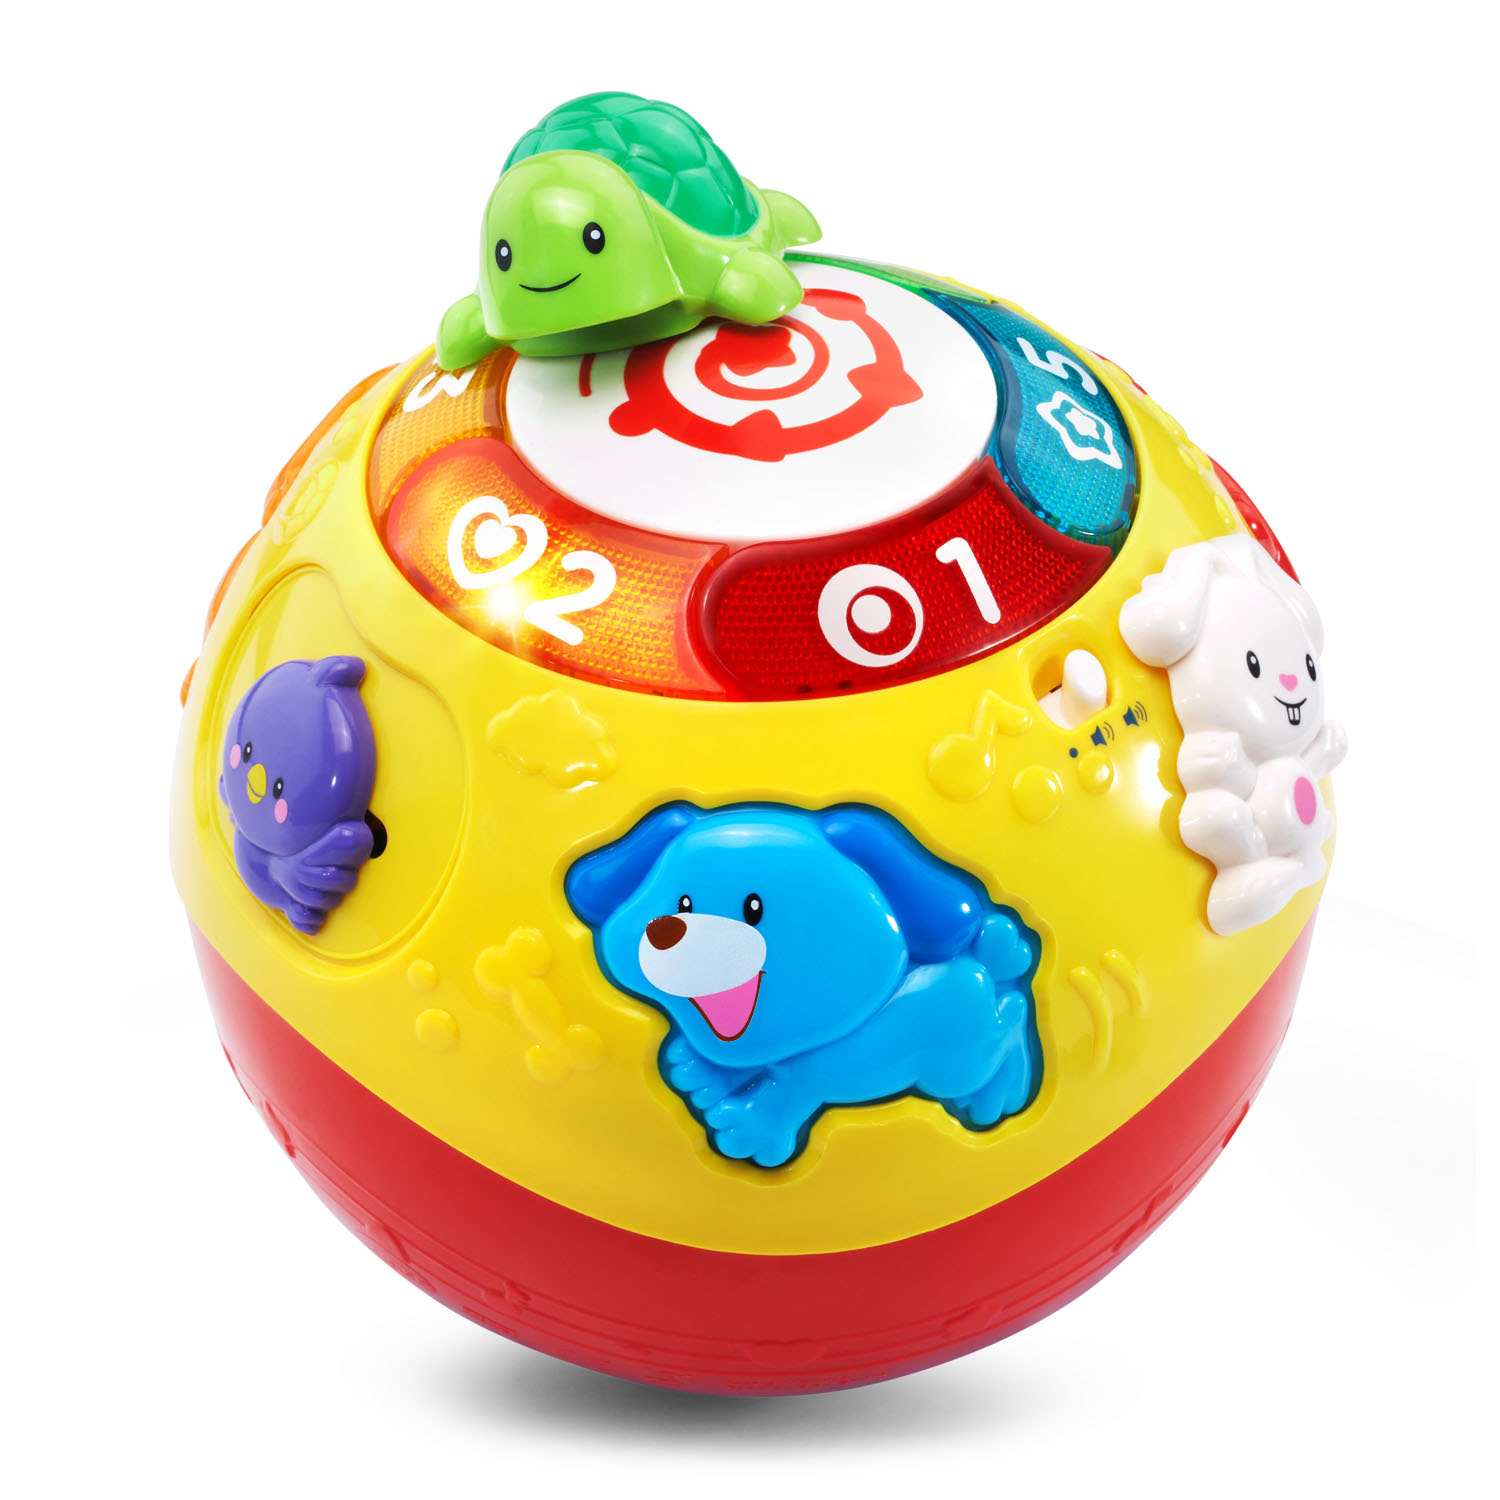 VTech Wiggle & Crawl Ball With Animal Friends Encourages Motor Skills